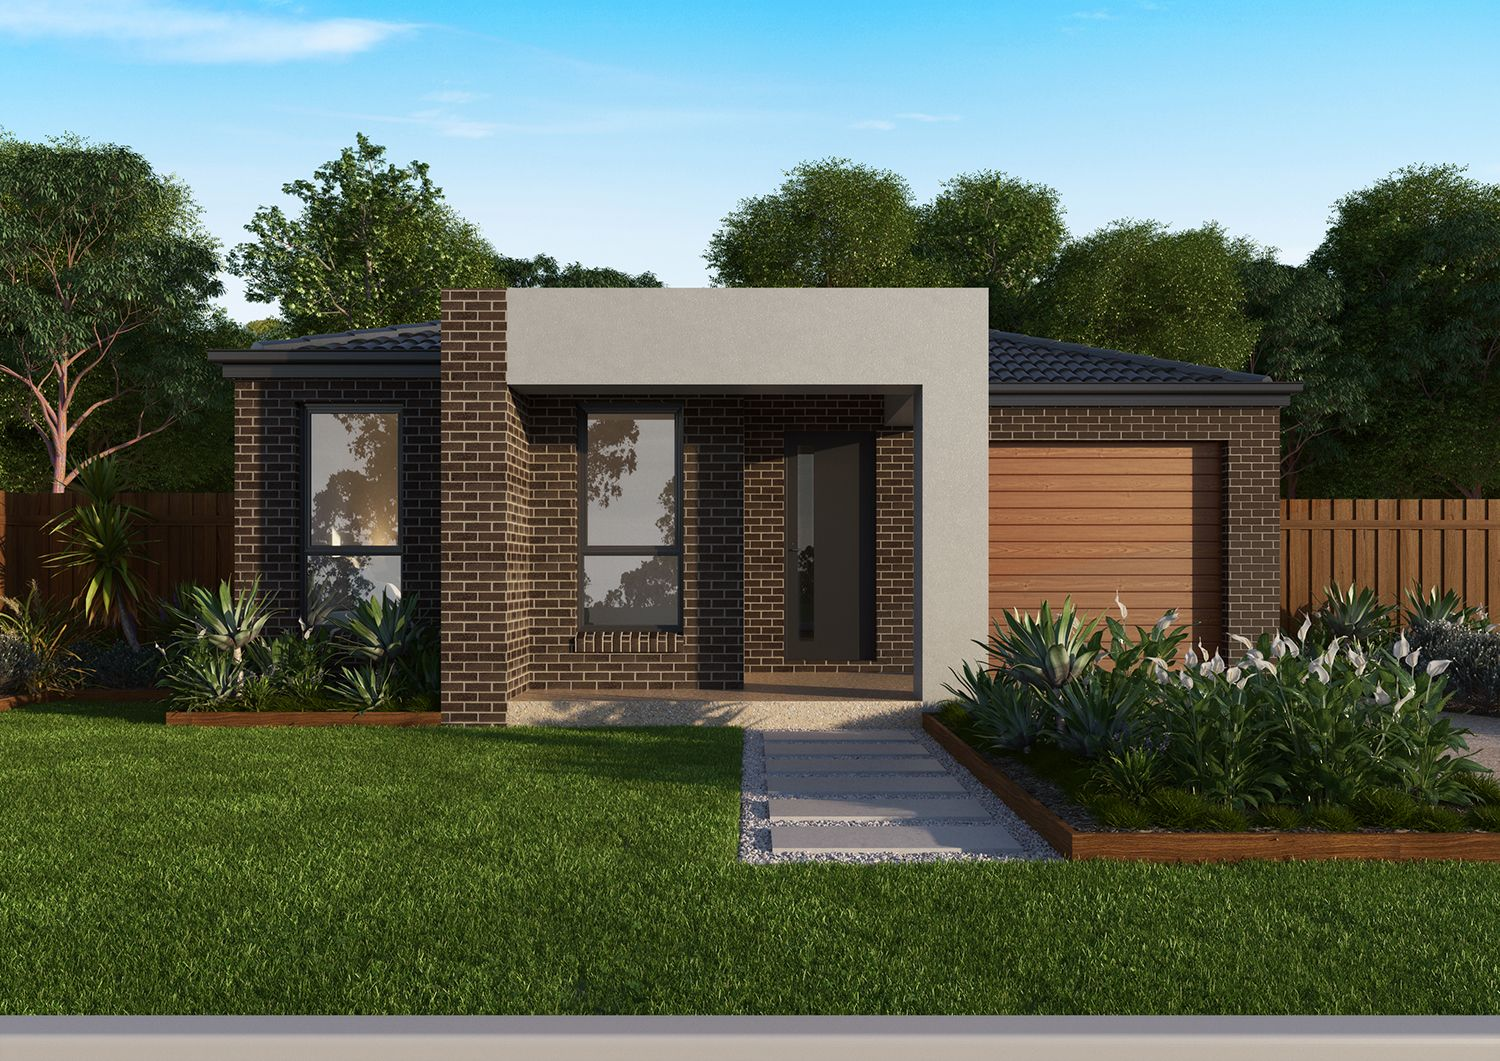 Lot 152 Meadows Drive, Bowery Estate, Dean VIC 3363, Image 0